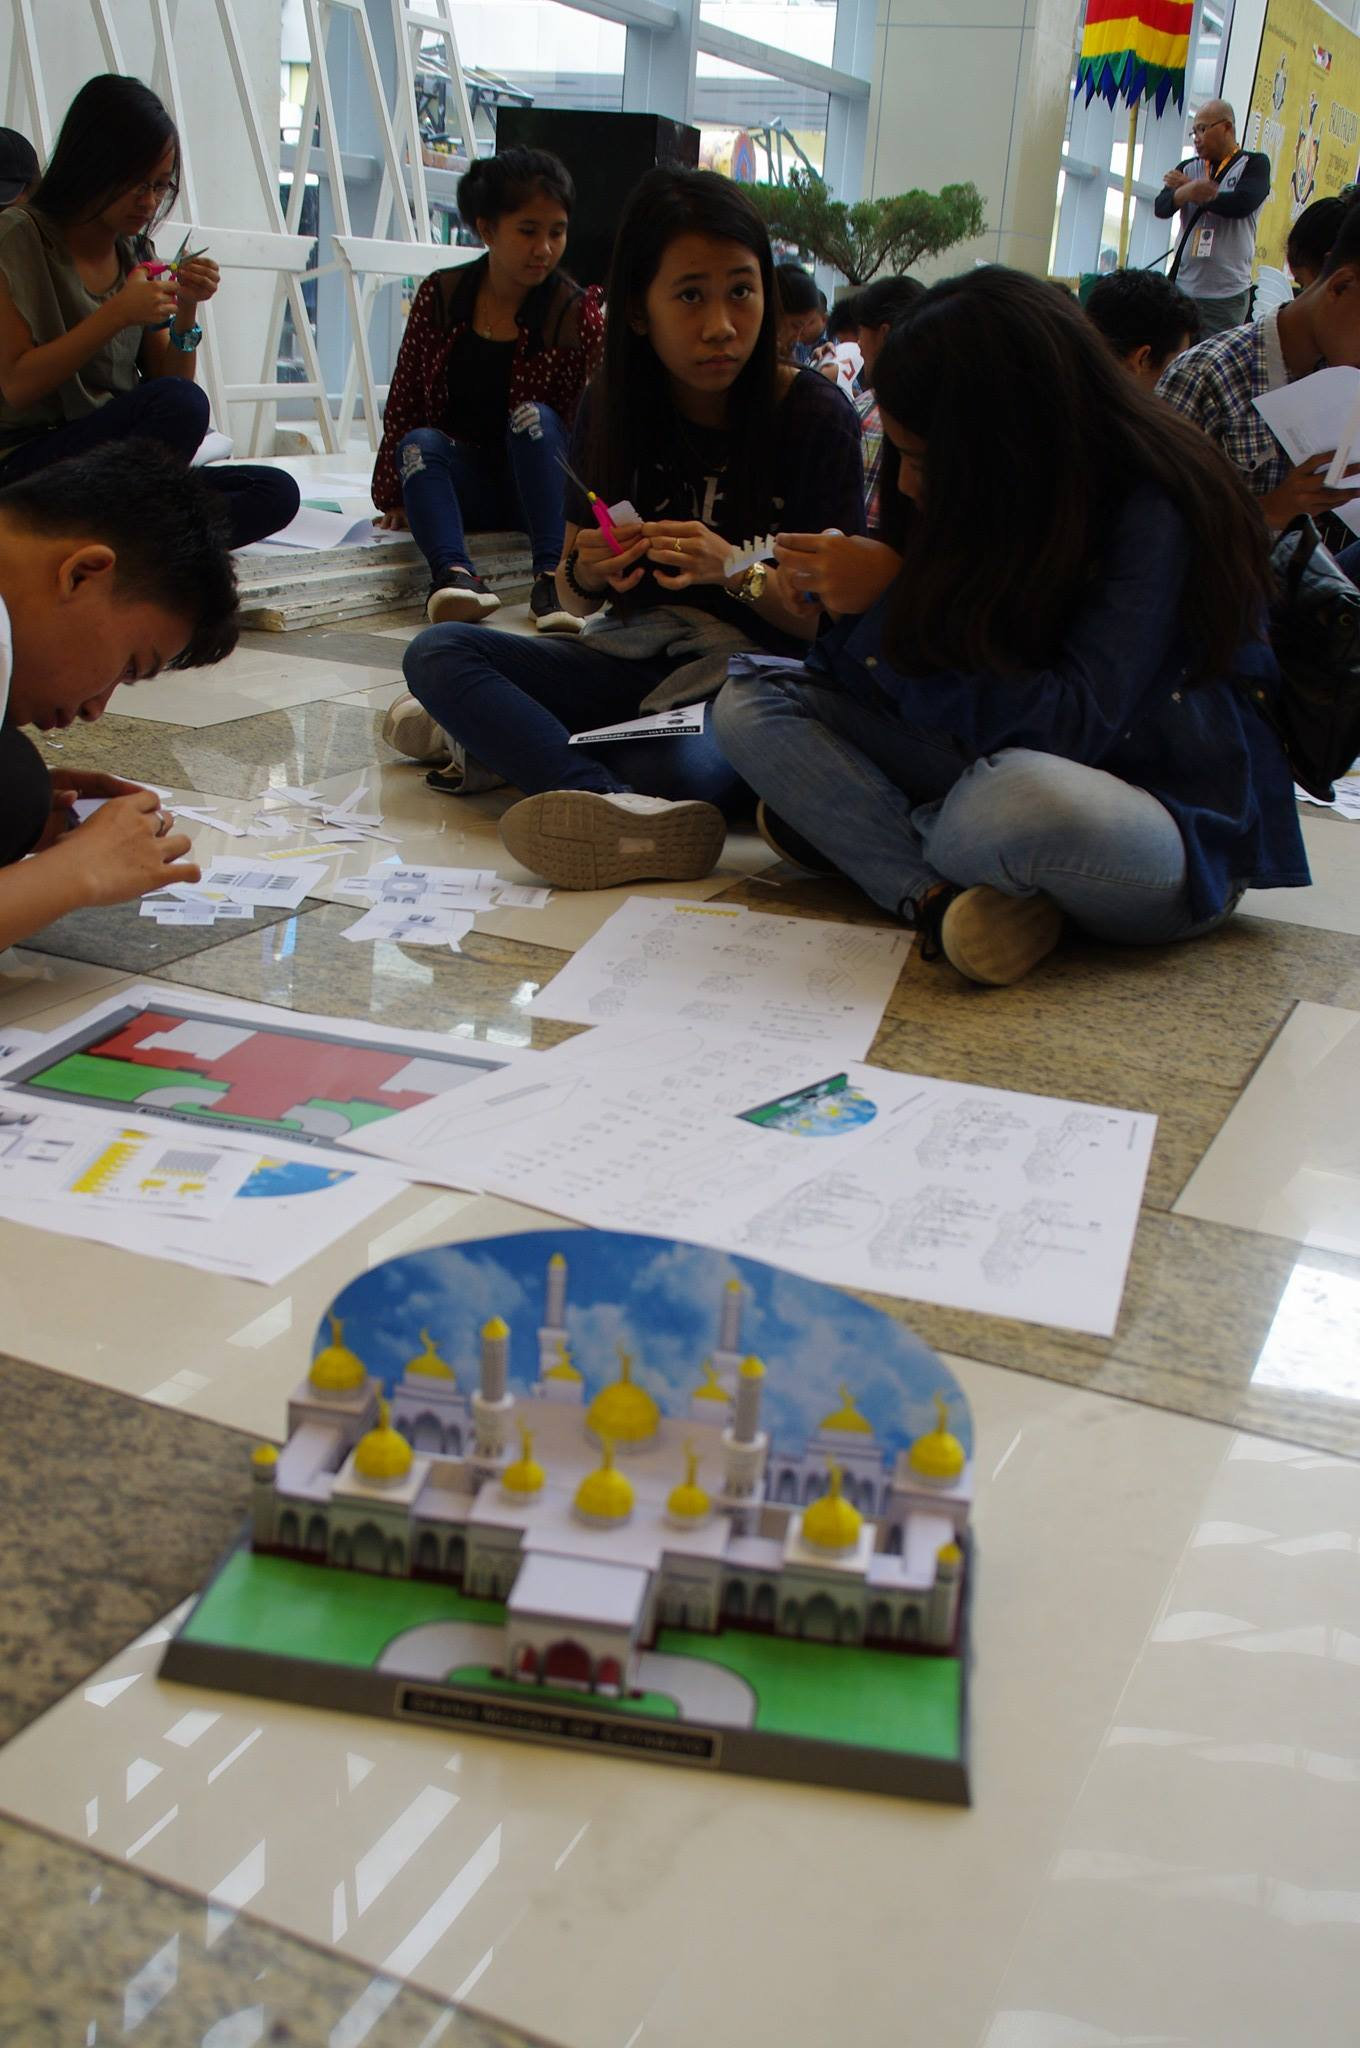 PAPER ART. Students make paper craft. On the foreground is a paper craft of the Grand Mosque in Cotabato City. Photo by Leon Pangilinan Jr/NCCA